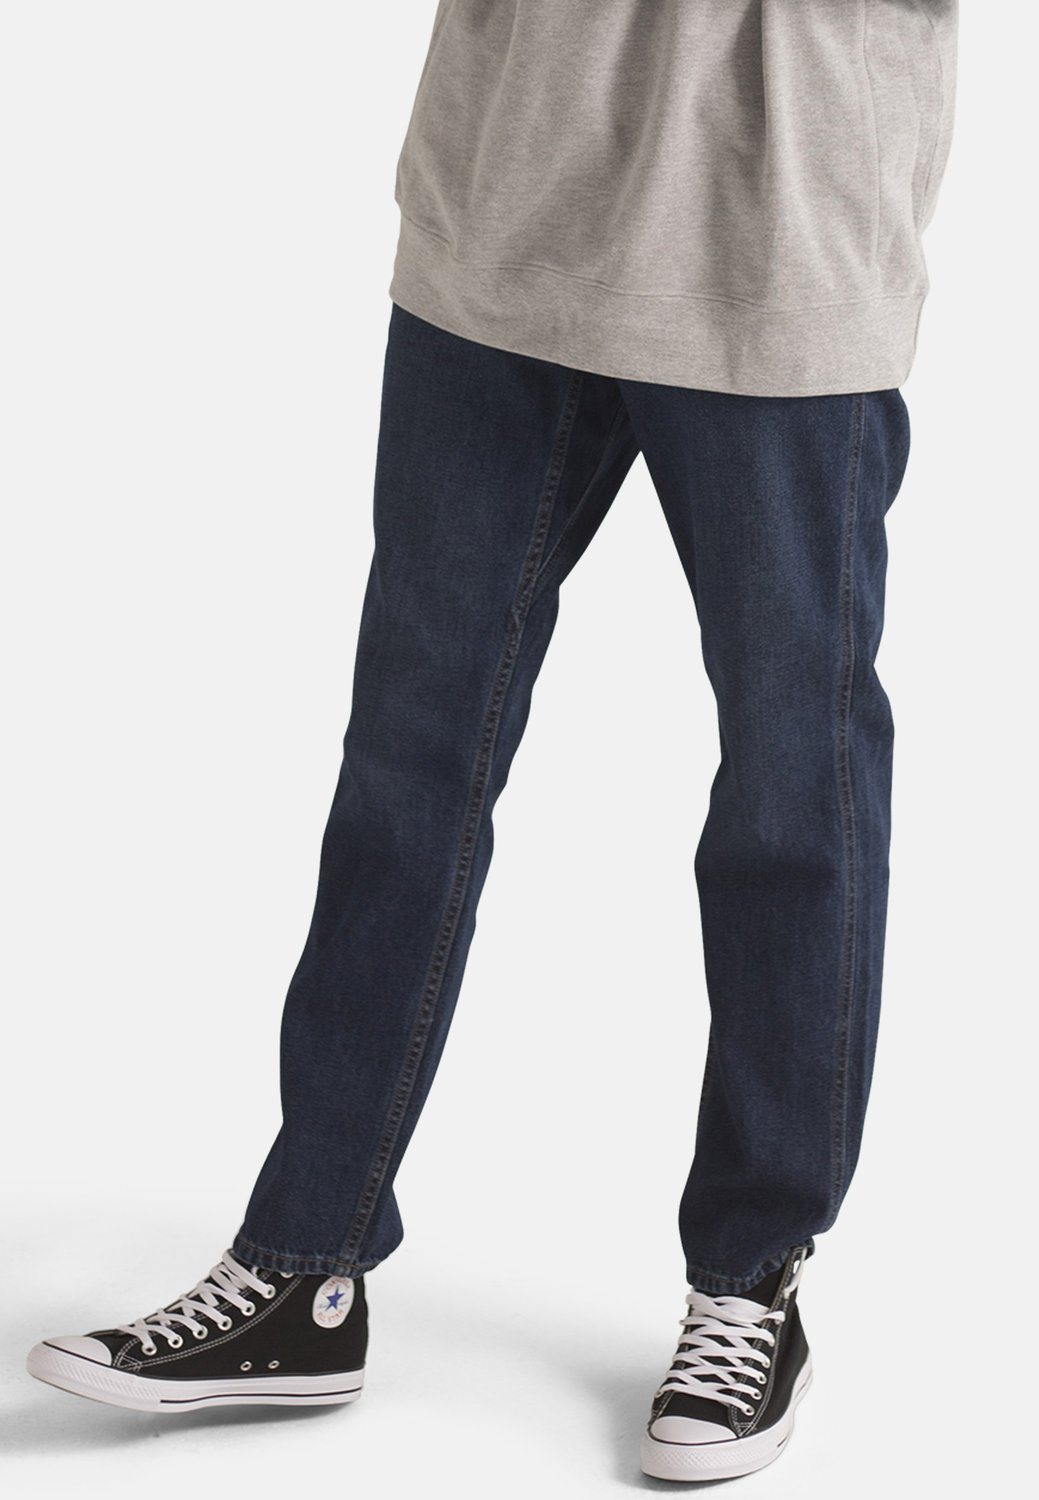 Dark Blue Denim Organic Jeans | Organic Cotton | by MONKEE Genes